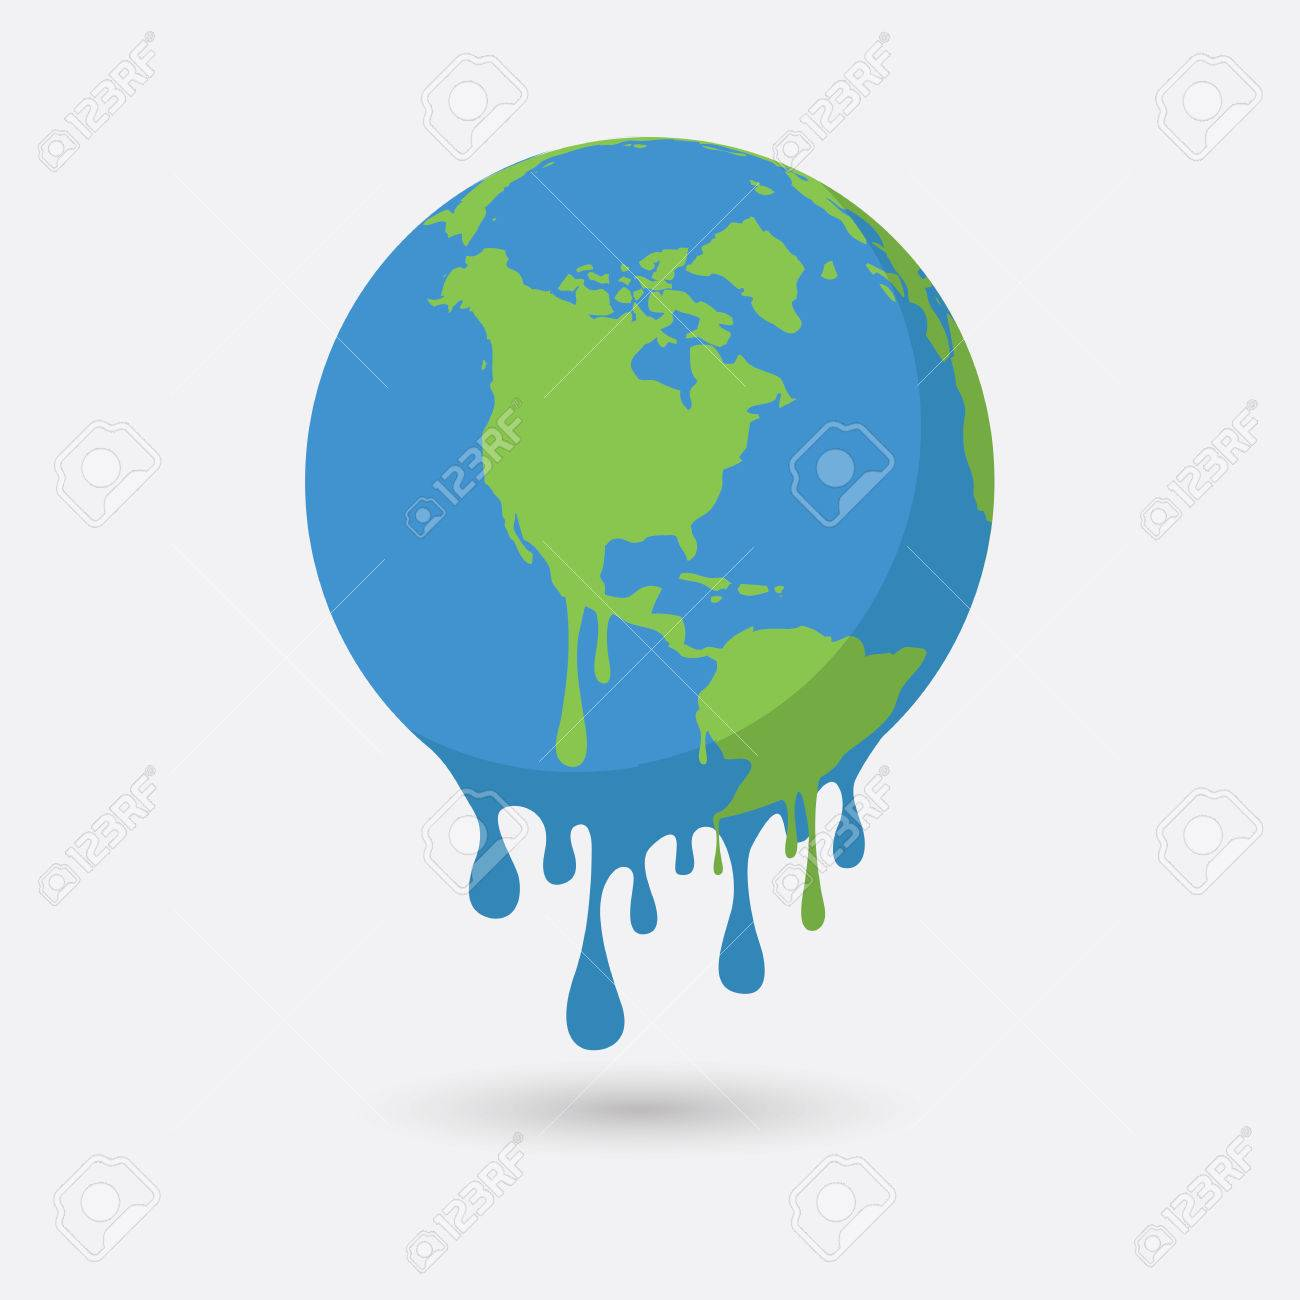 Global warming, Graphic illustration of a melting earth. - 75281302